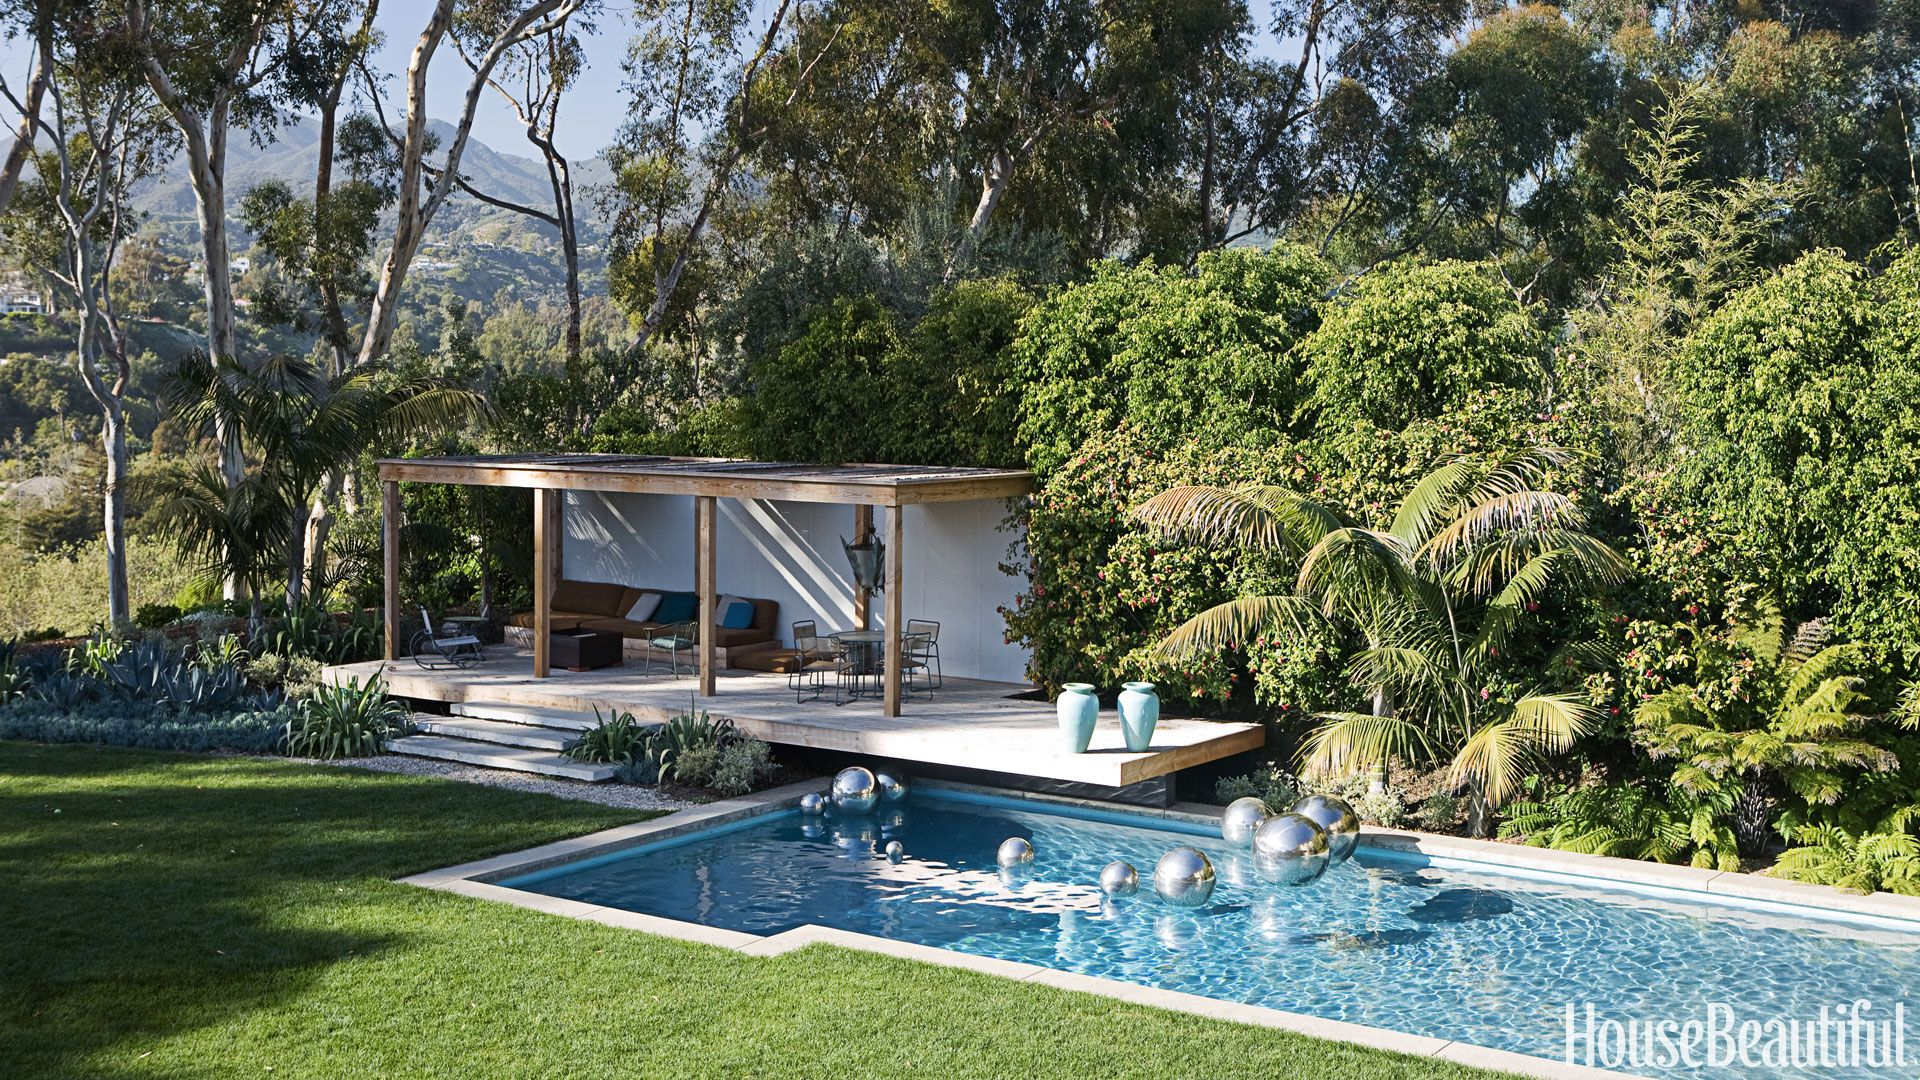 53 Beautiful Landscaping Ideas Best Backyard Landscape Design Tips with regard to 11 Smart Concepts of How to Build Landscaped Backyards